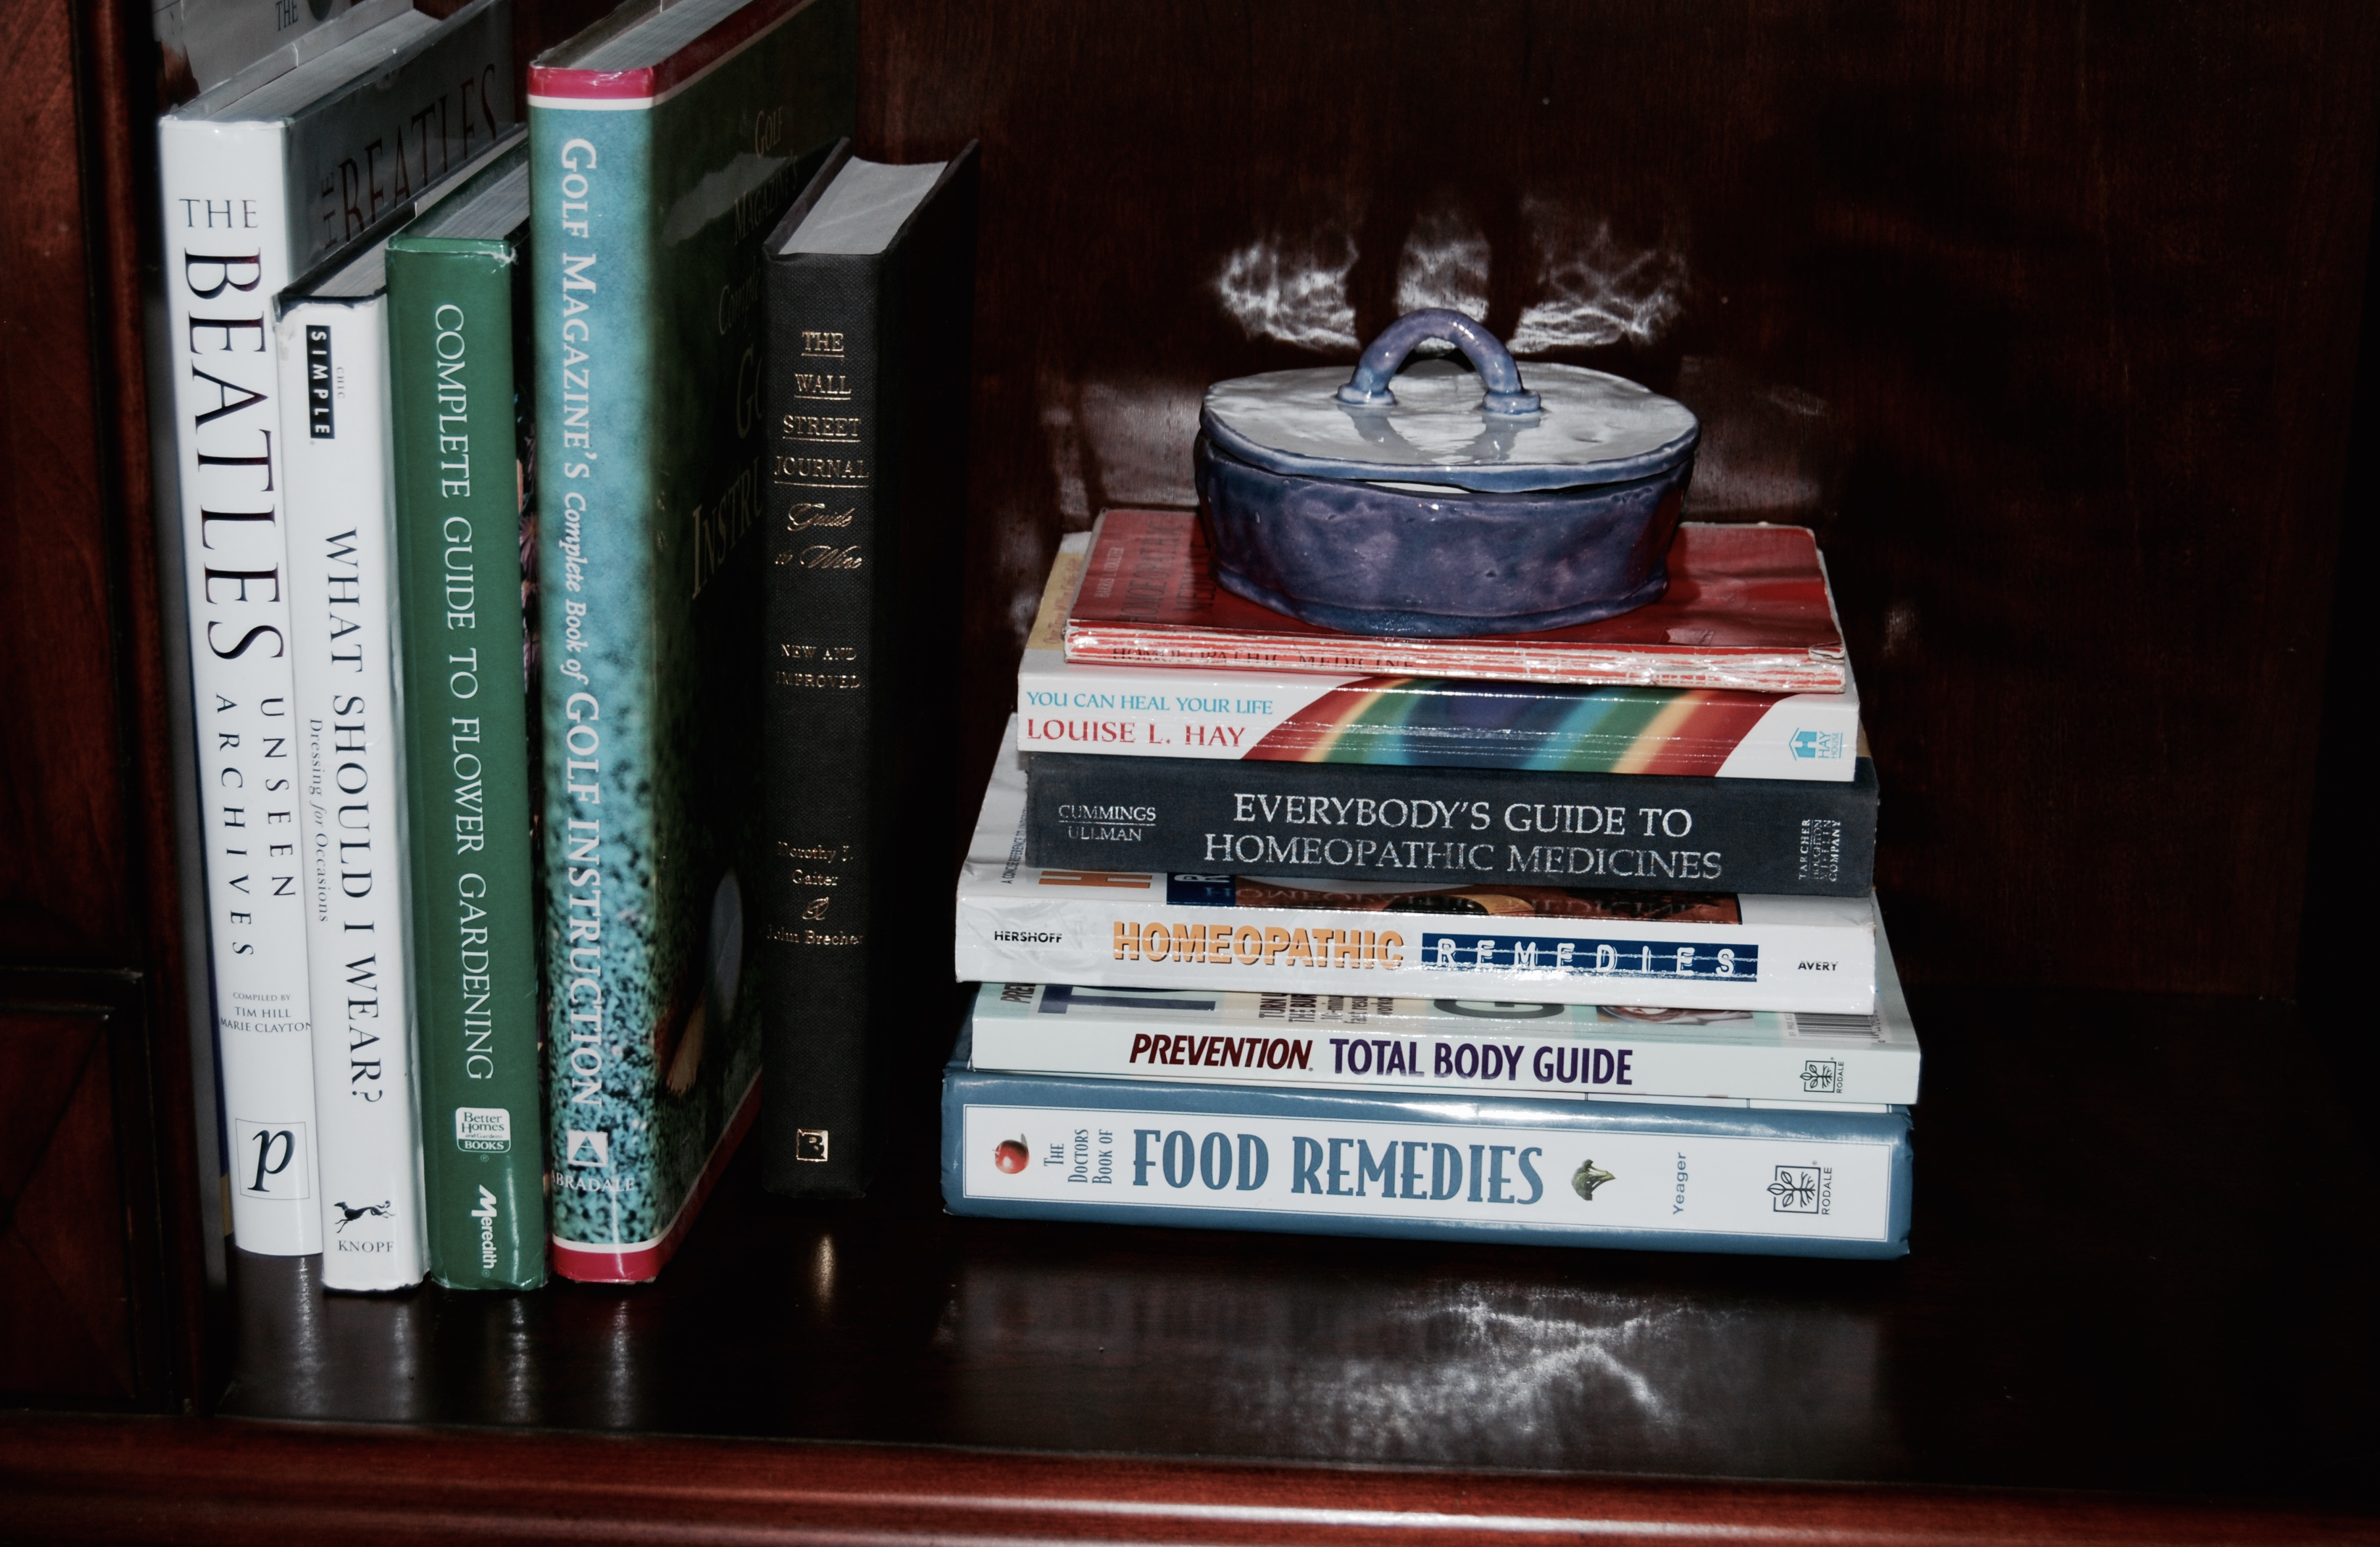 Organizing Books The Marie Kondo Way -The Life-Changing Magic of Tiding Up